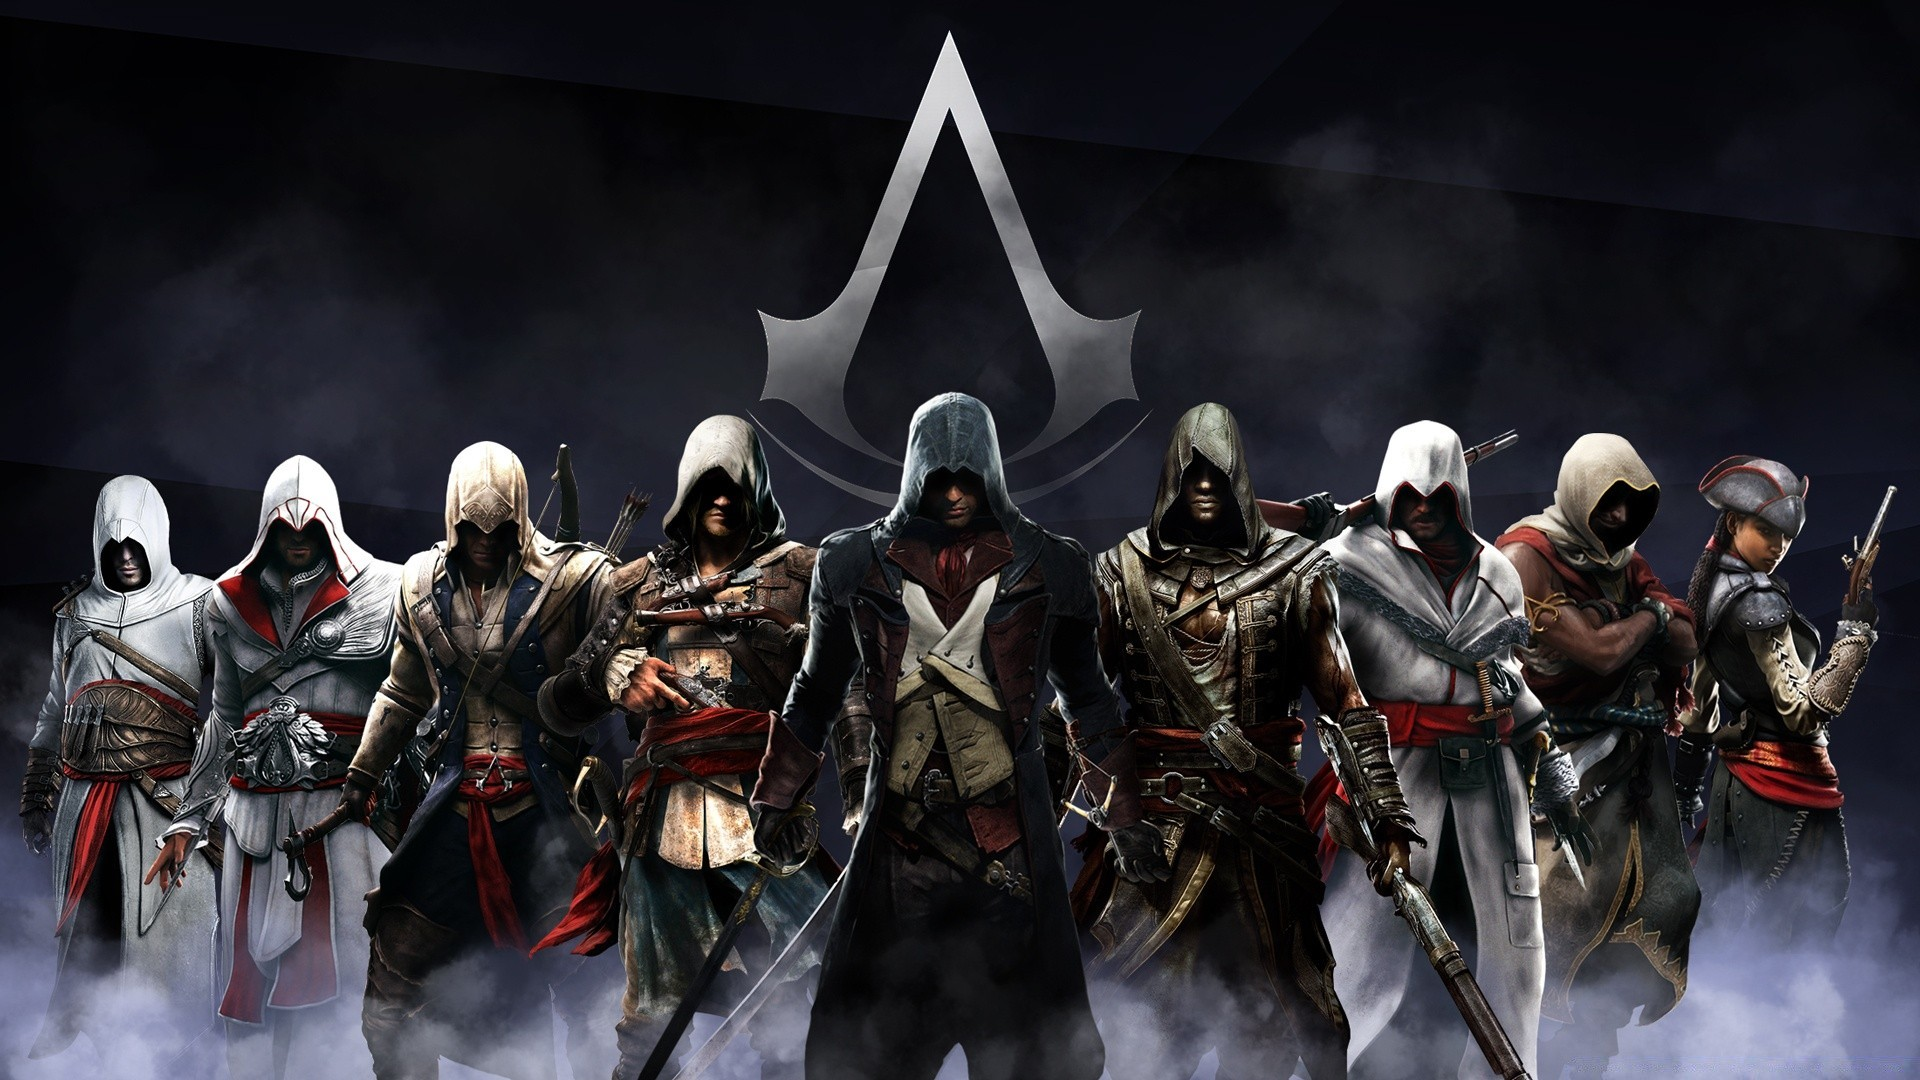 Assassins Creed Artwork Full Hd Android Wallpapers